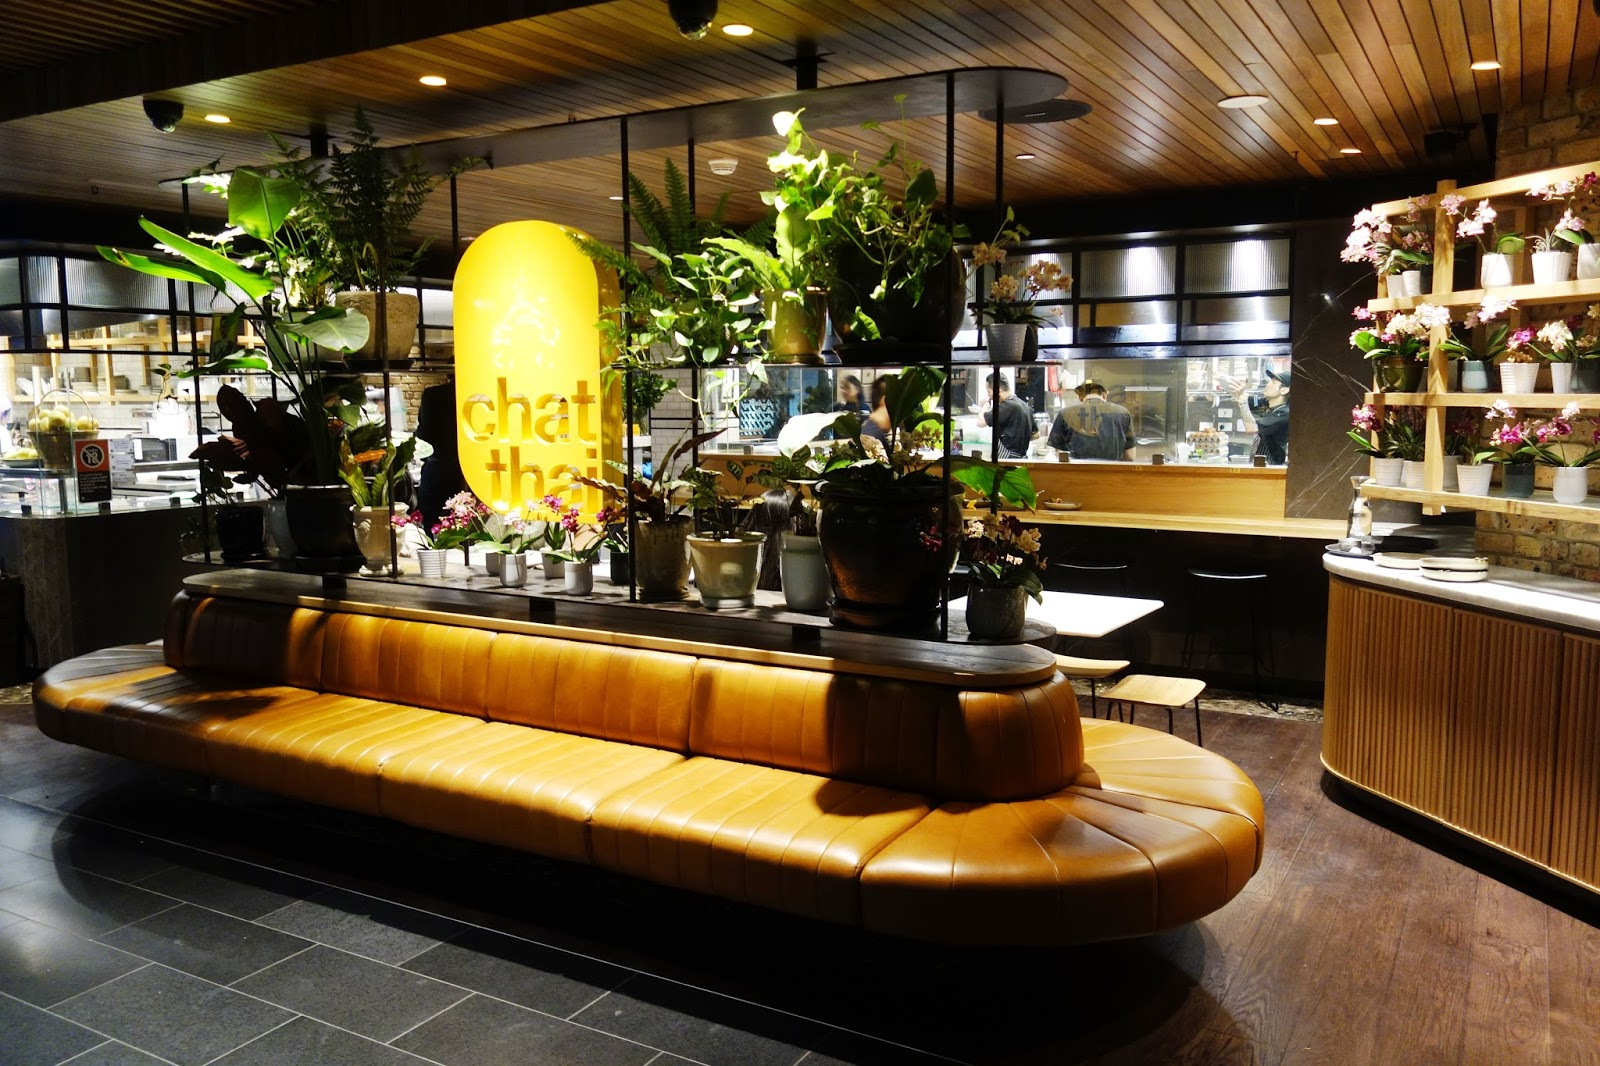 sydney chat The latest chat thai at gateway sydney opened last weekend, bringing the chat thai tally to six restaurantsalready well-ensconced in randwick, manly, thaitown, westfield sydney and the galeries, the new circular quay outlet is their biggest yet, seating 145 diners.